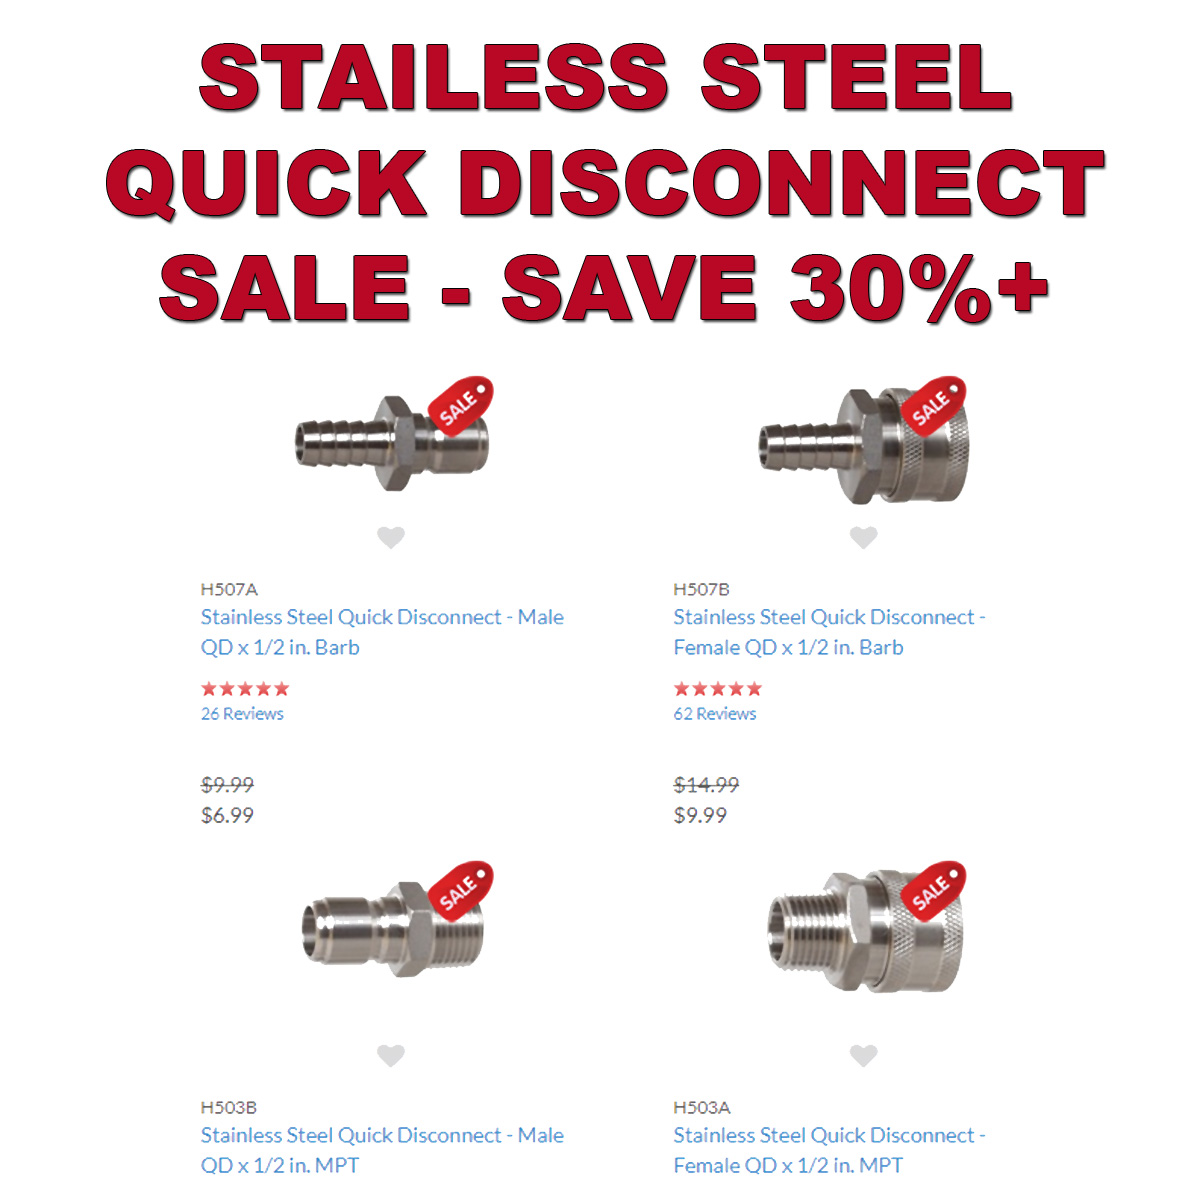 MoreBeer Save 30% On Stainless Steel Quick Disconnects With This MoreBeer.com Promo Code Coupon Code